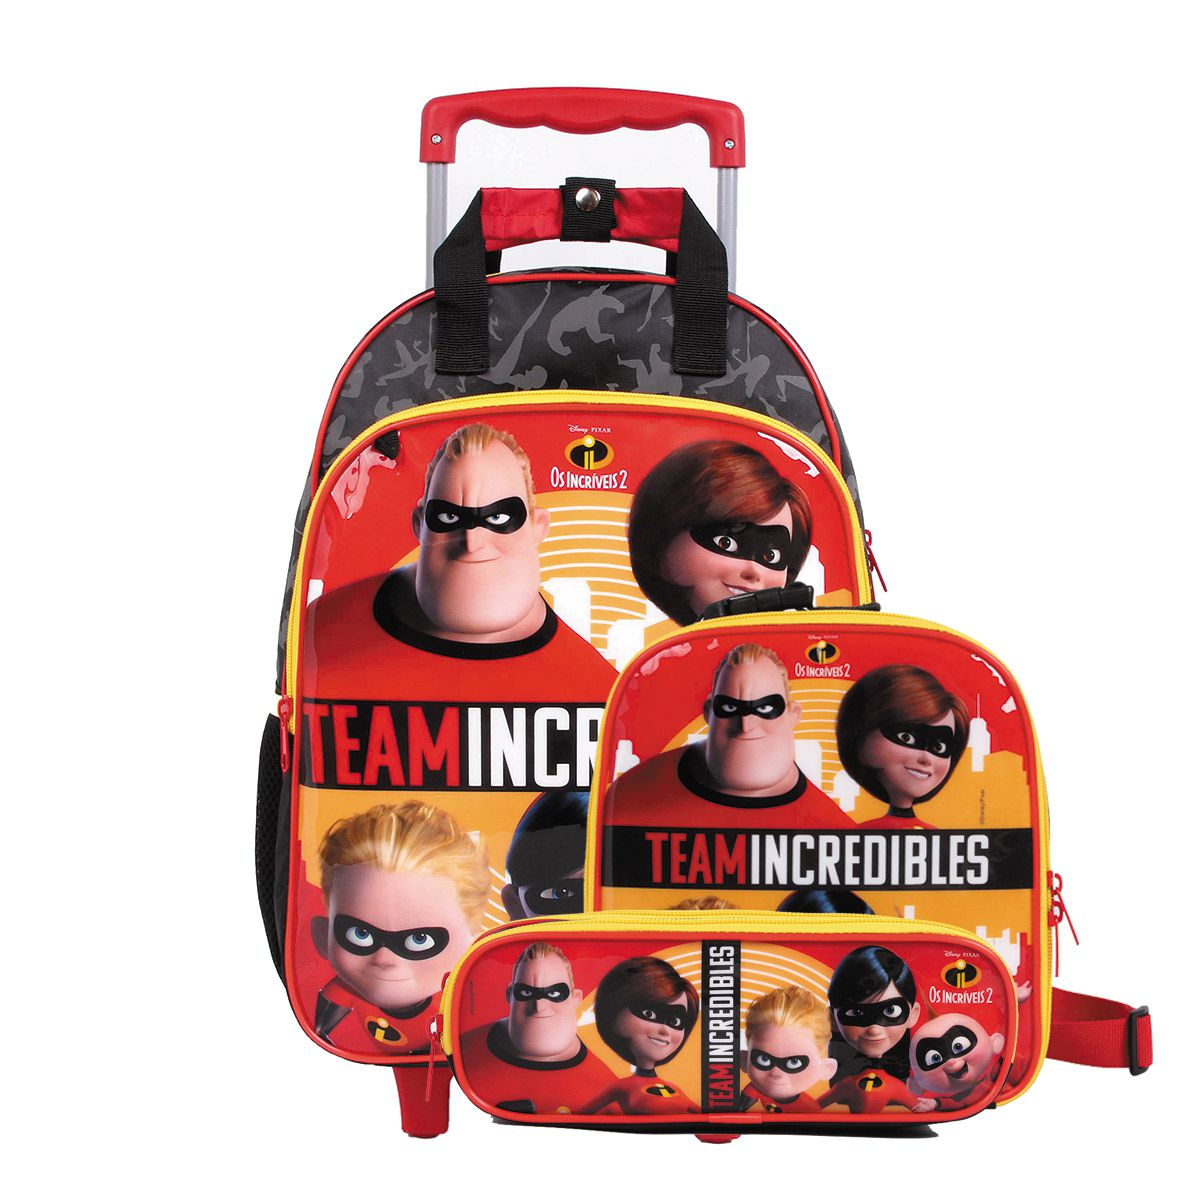 Mochilete Os Incríveis 2 Oficial Team Incredibles + Lancheira + Estojo Disney